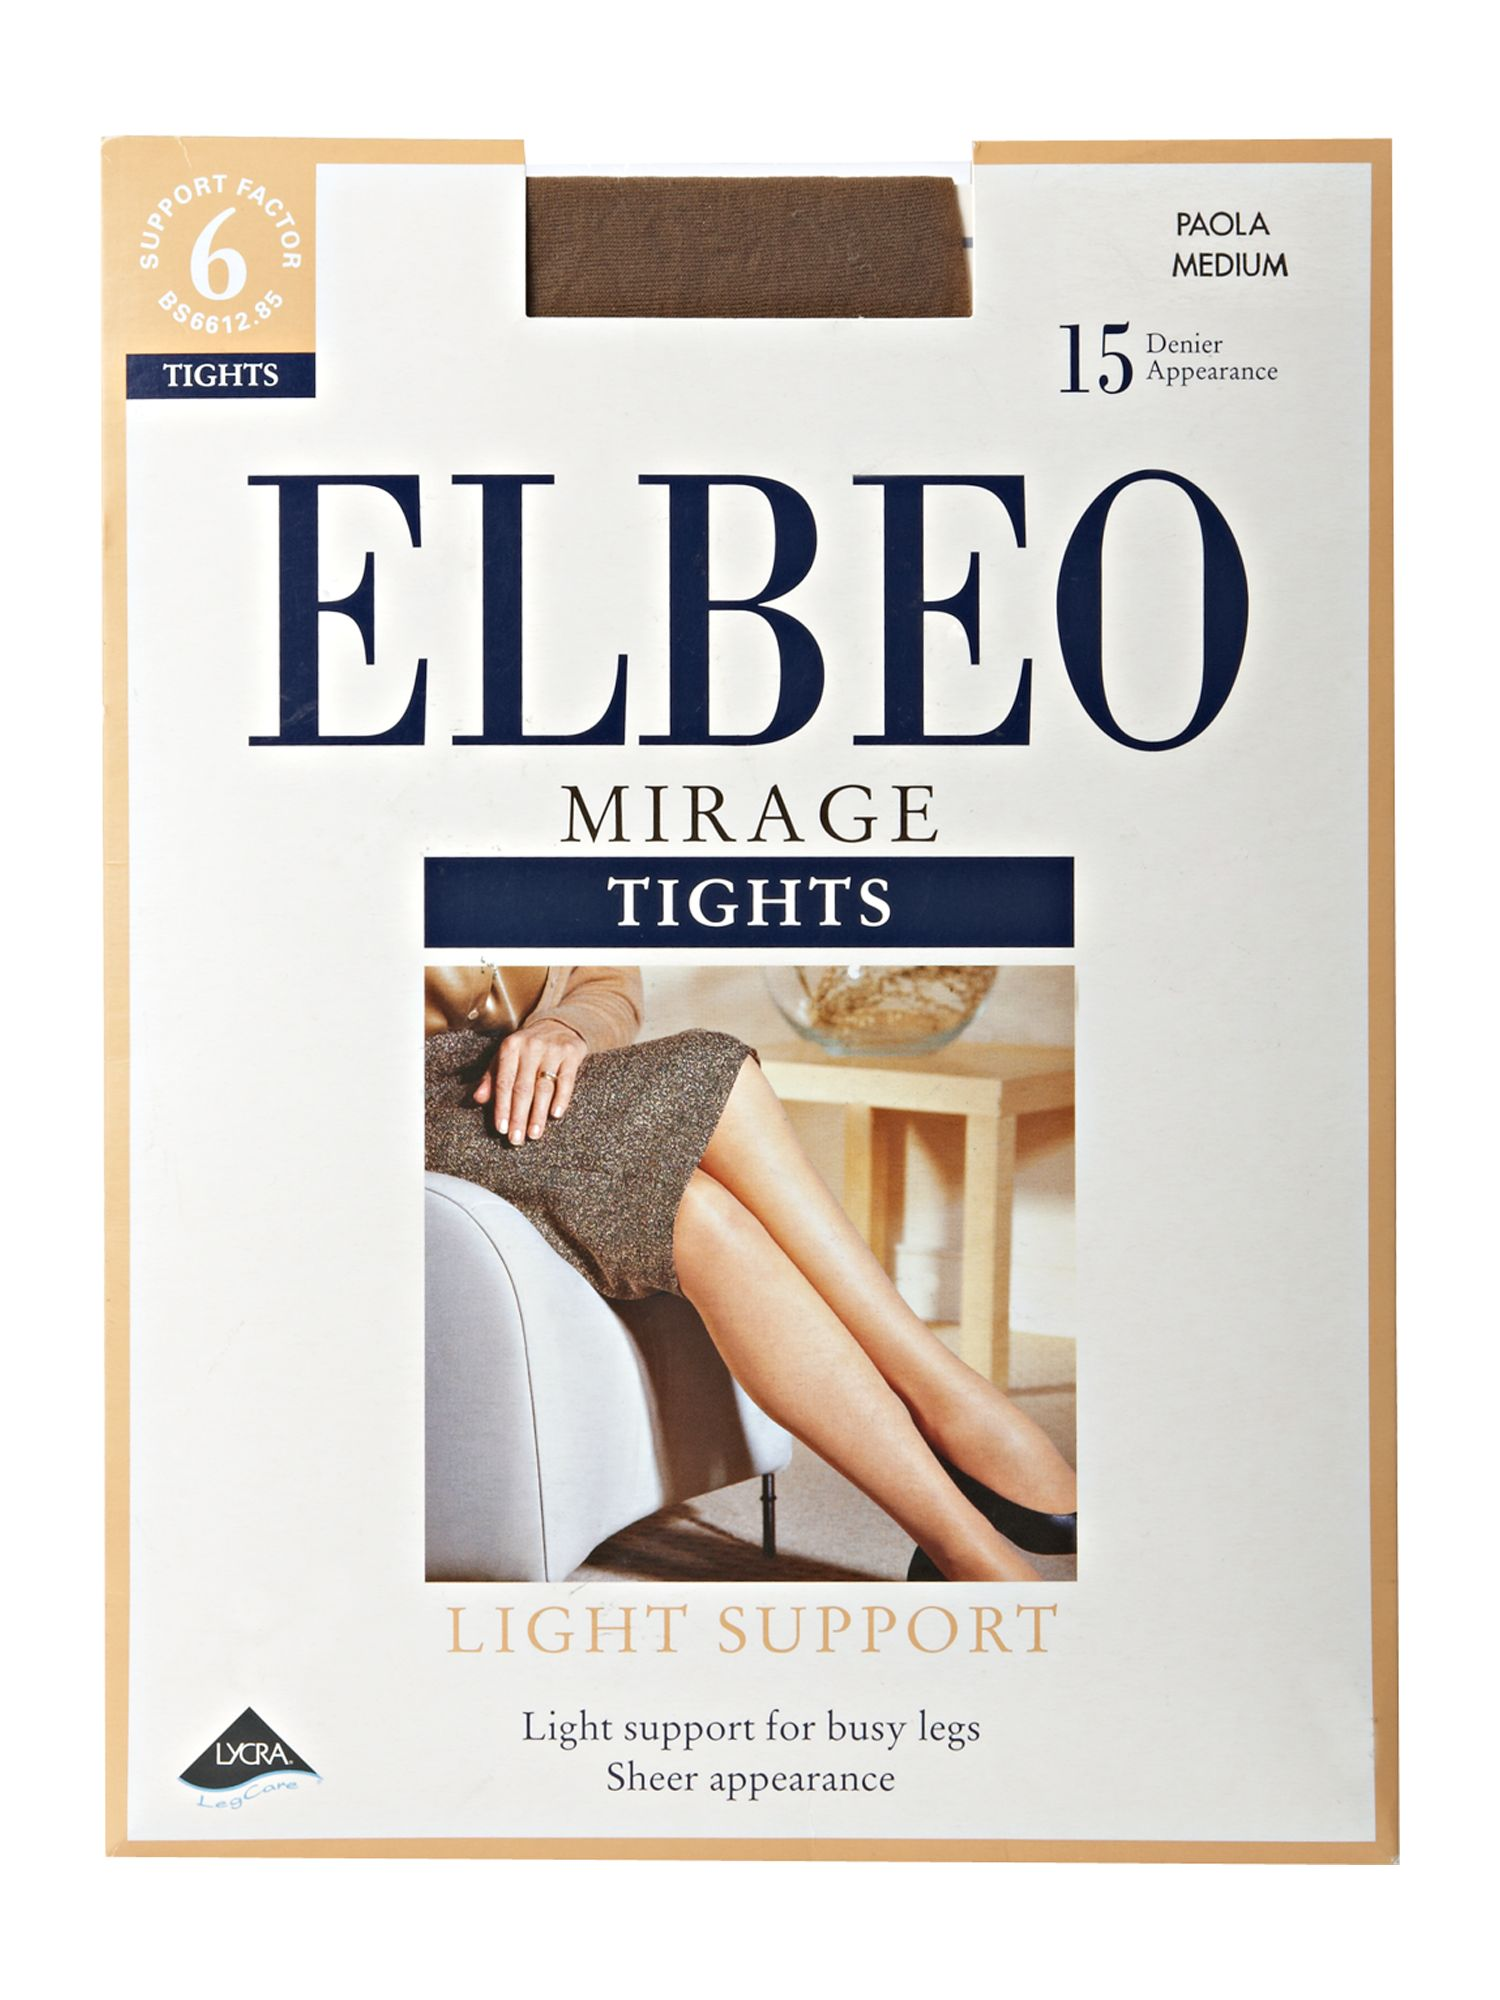 Mirage tight light support